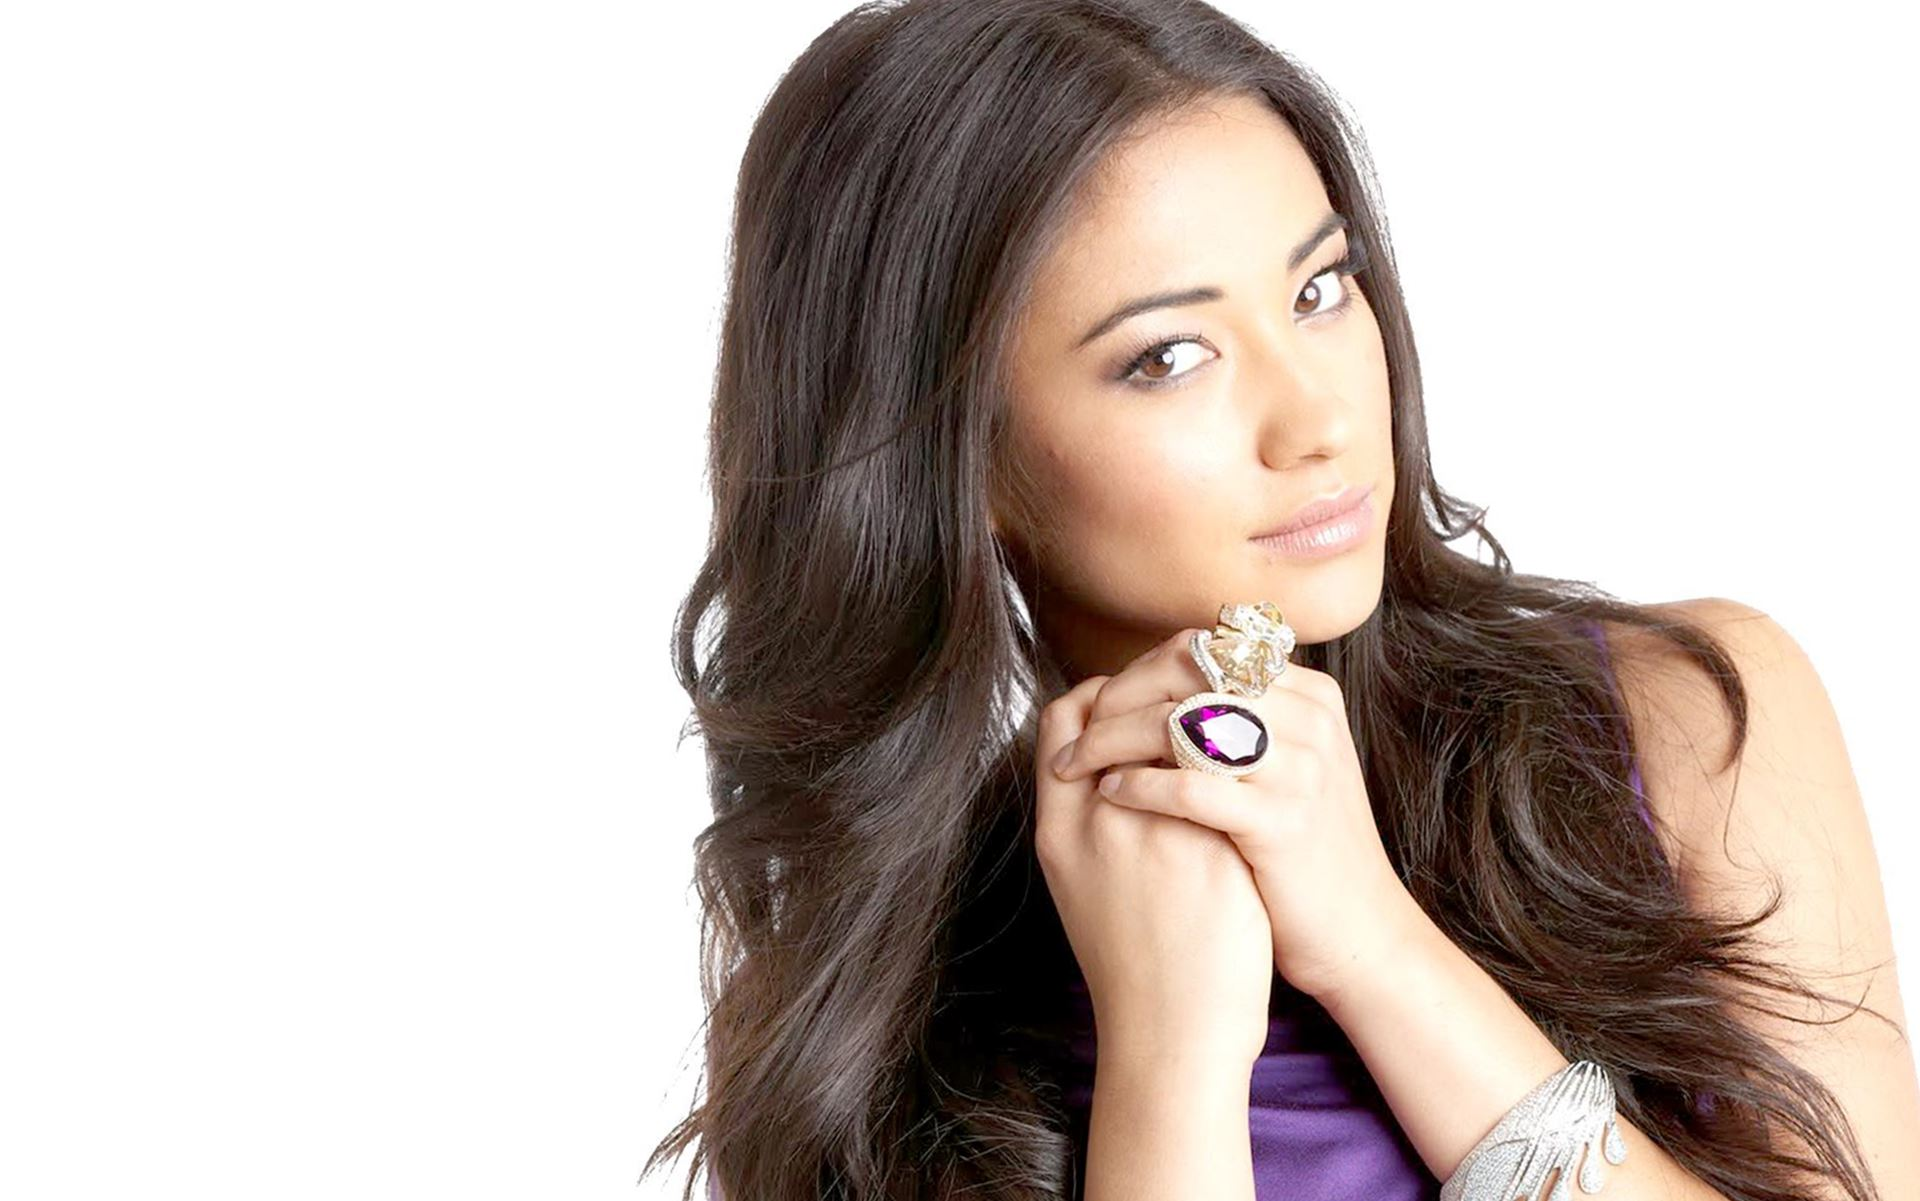 Model Actorss Shay Mitchell Wallpaper Images Photos Download